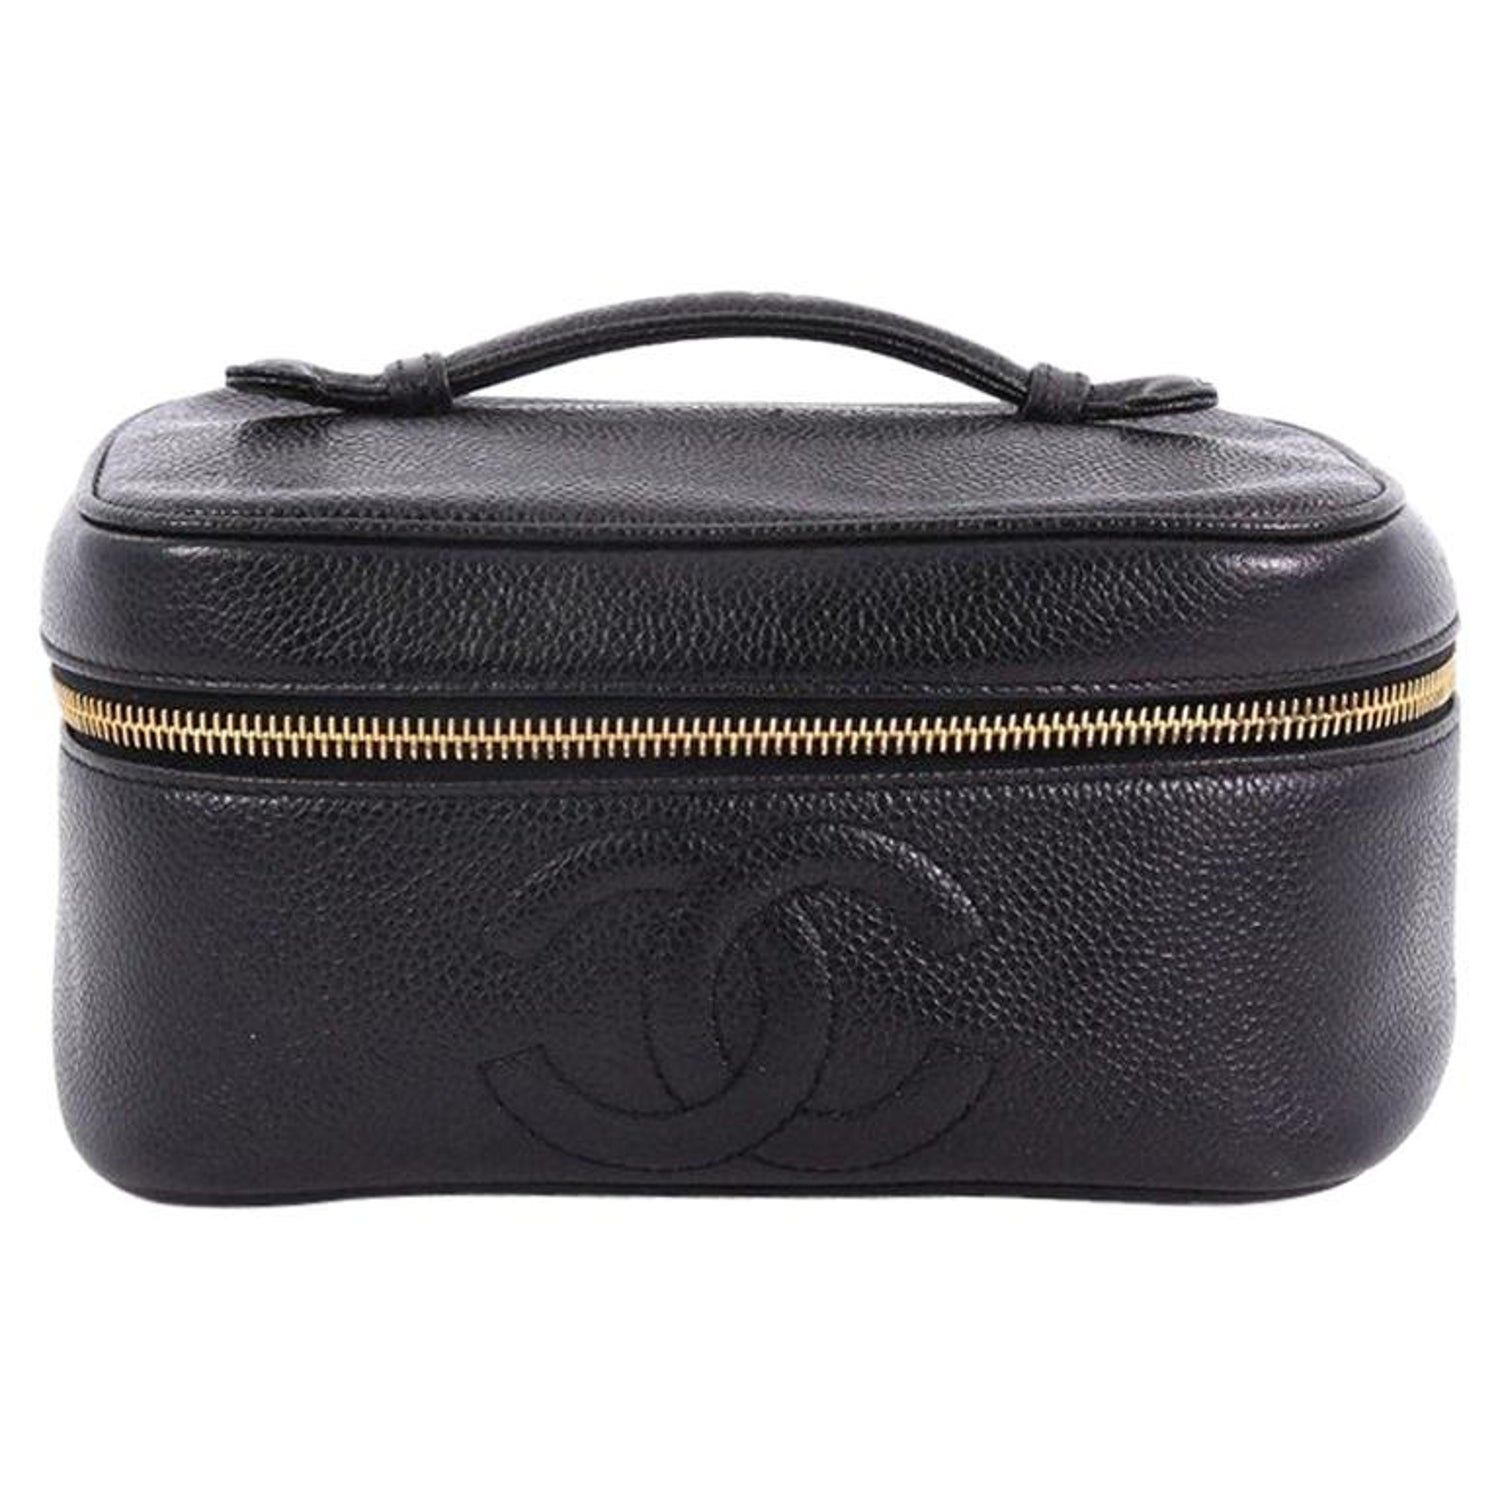 d9db0bc4eff6 Chanel Vintage Timeless Cosmetic Case Caviar at 1stdibs